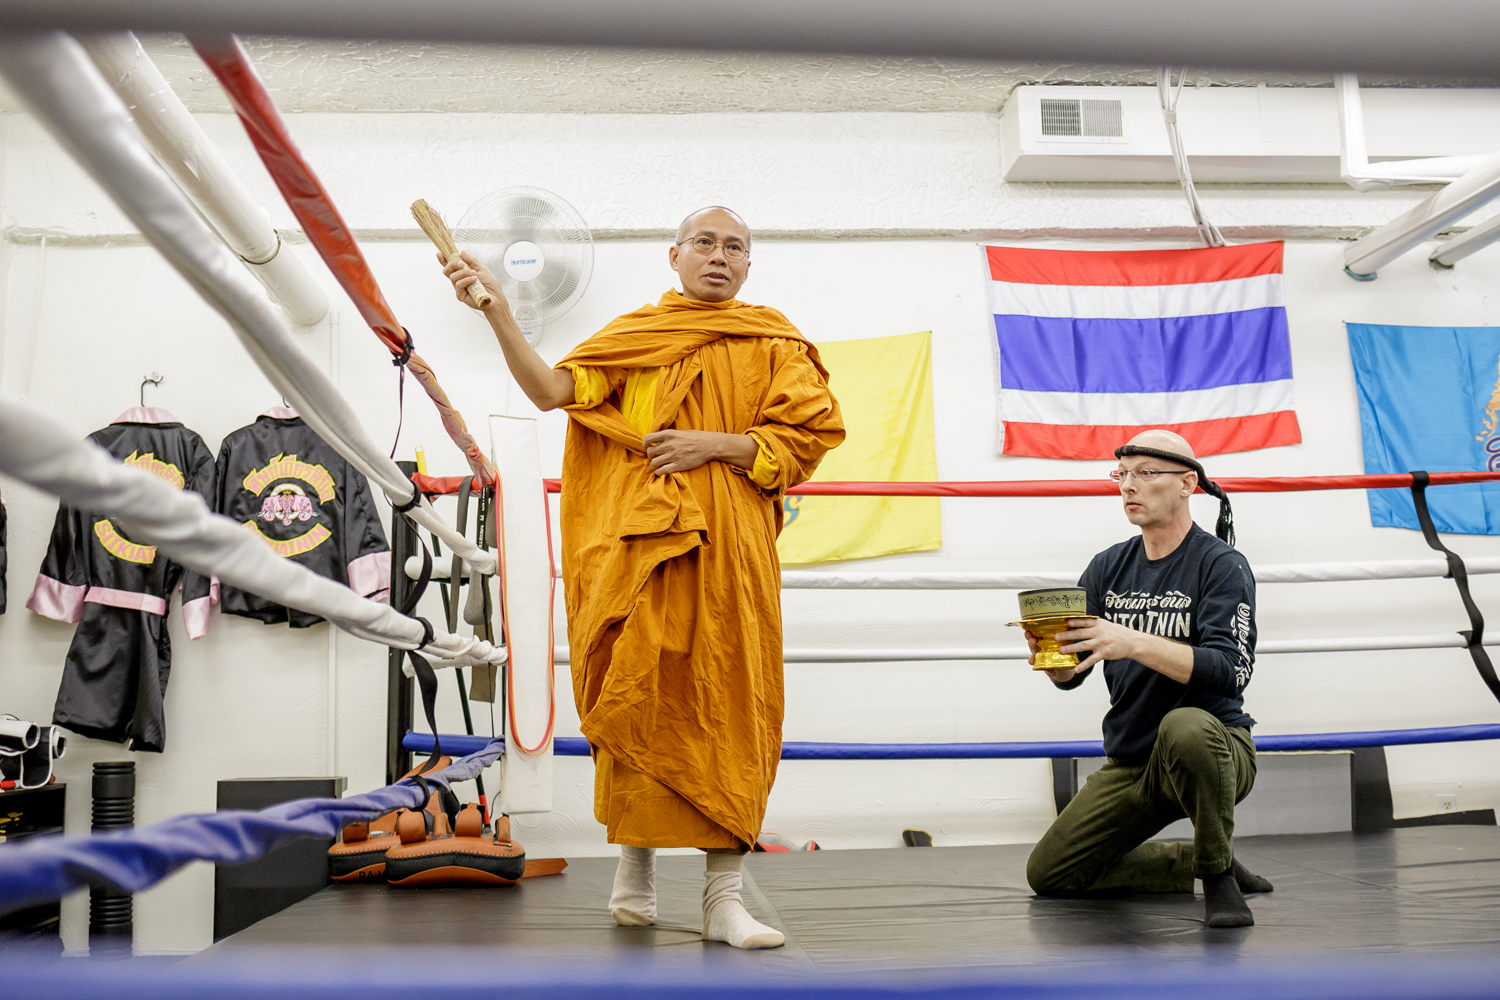 Sitkiatnin Muay Thai head instructor David Reese (right) assists with the blessing of the gym's ring by Thai Buddhist monks on Sunday morning. Sitkiatnin Muay Thai is a Thai boxing gym in the basement of 1918 Murray Avenue in Squirrel Hill.